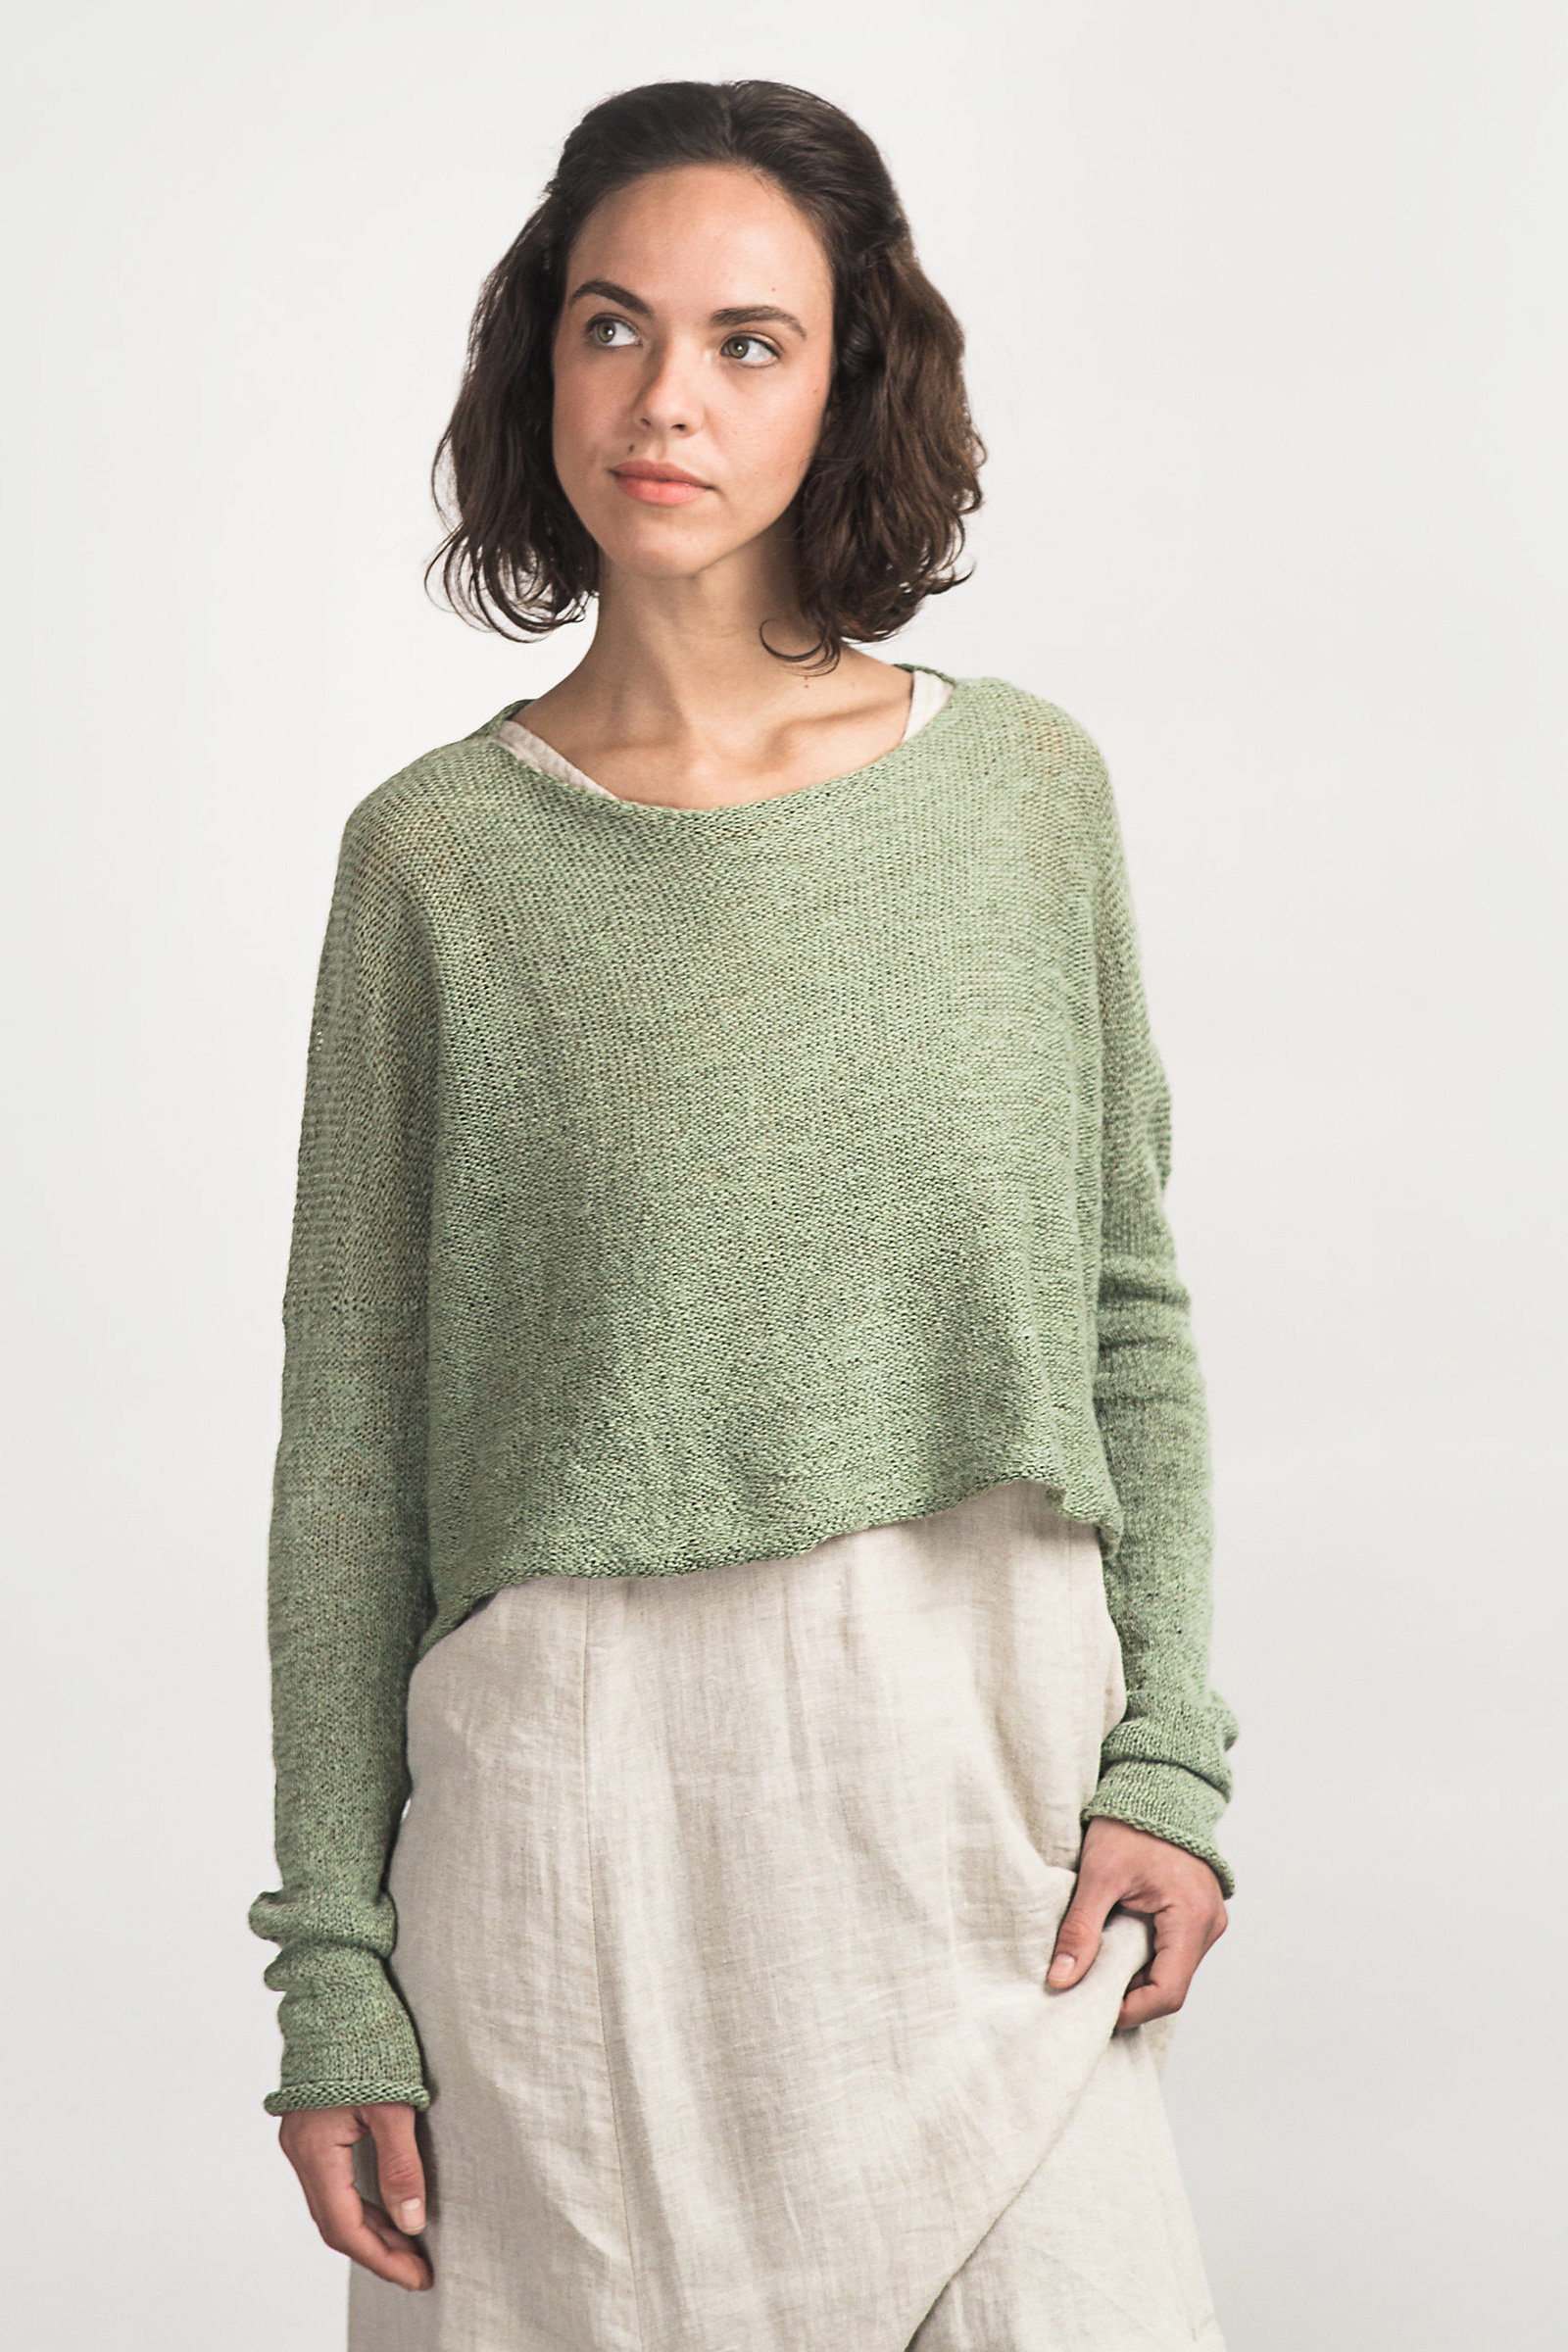 Cropped Boxy Pull By Cara May Knit Sweater Artful Home